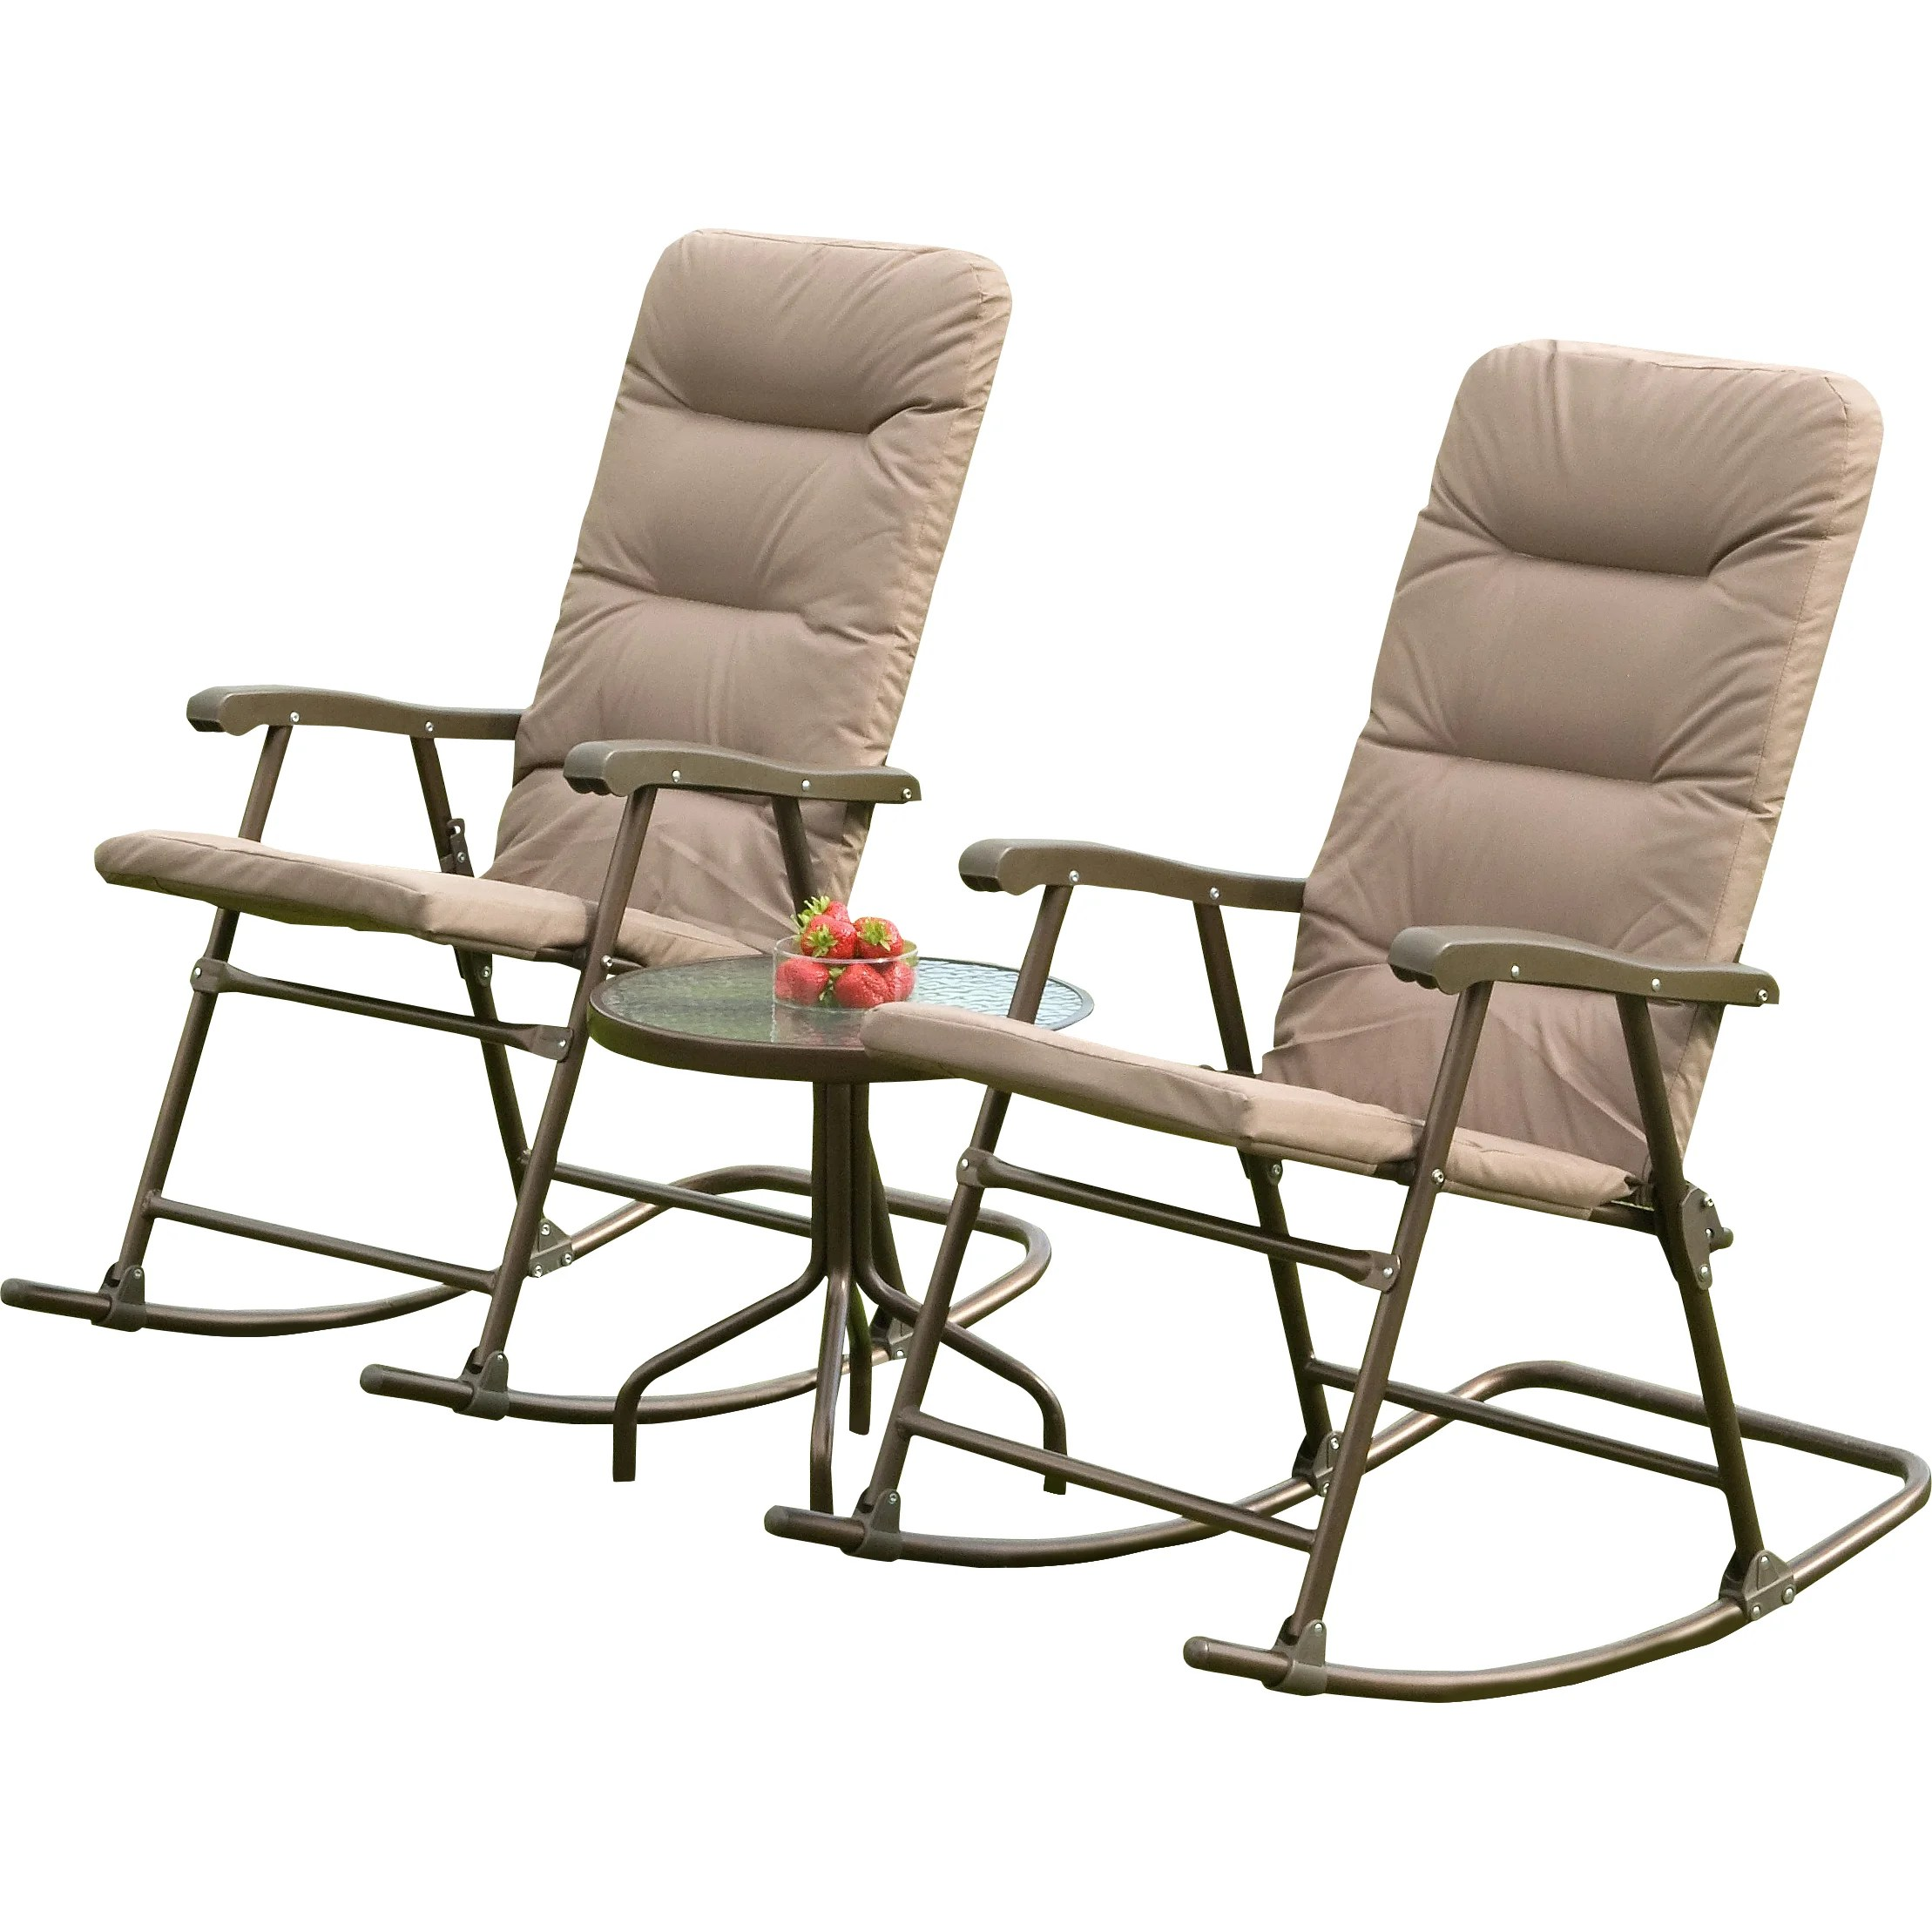 SunTime Outdoor Living Hereford 3 Piece Rocker Seating ... on Suntime Outdoor Living  id=57022